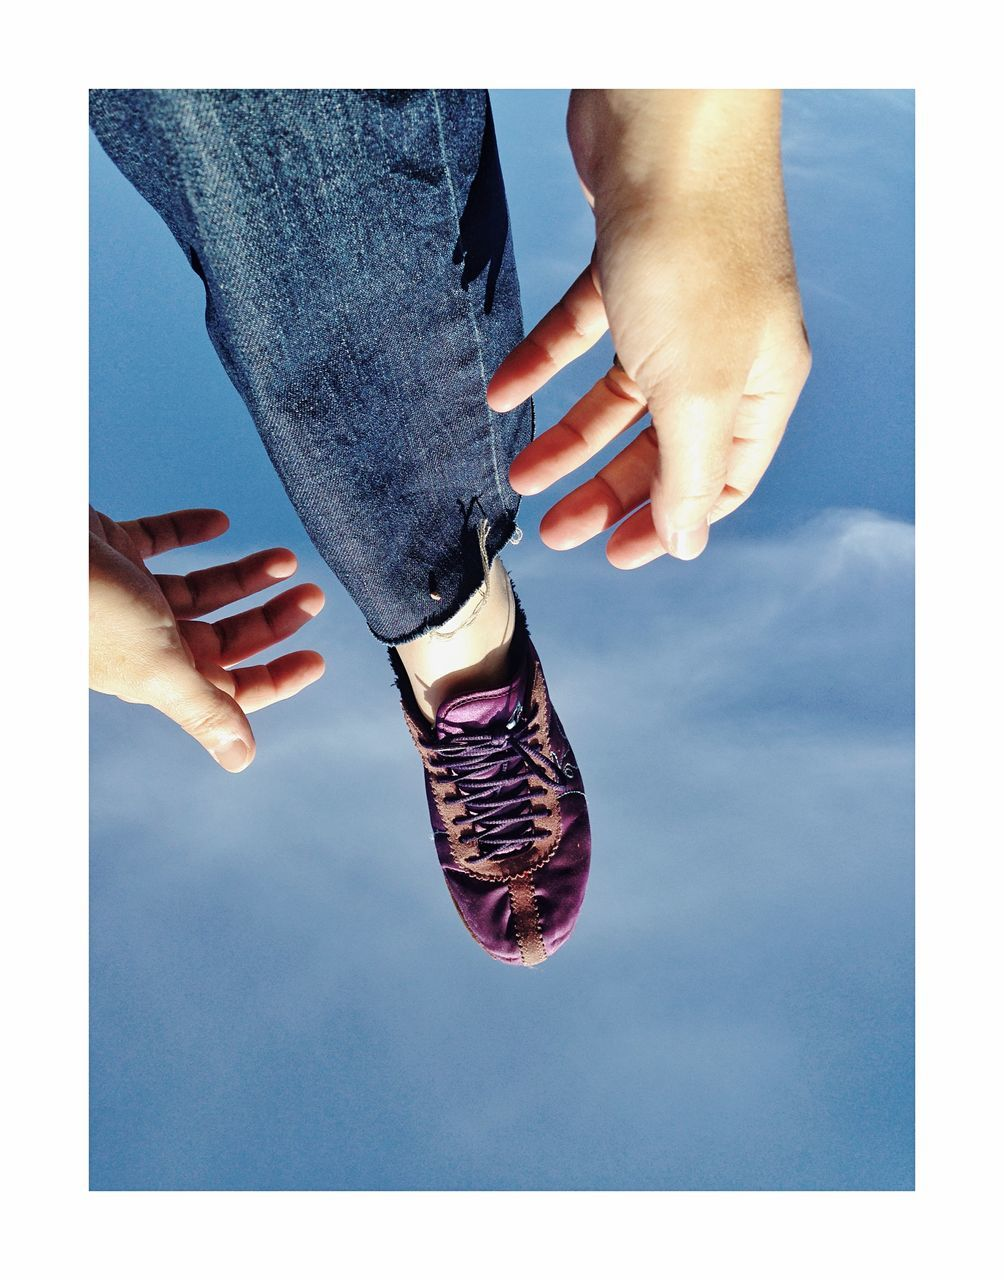 human body part, body part, real people, auto post production filter, transfer print, human hand, human leg, hand, low section, people, adult, men, lifestyles, women, blue, day, bonding, jeans, two people, human foot, human limb, finger